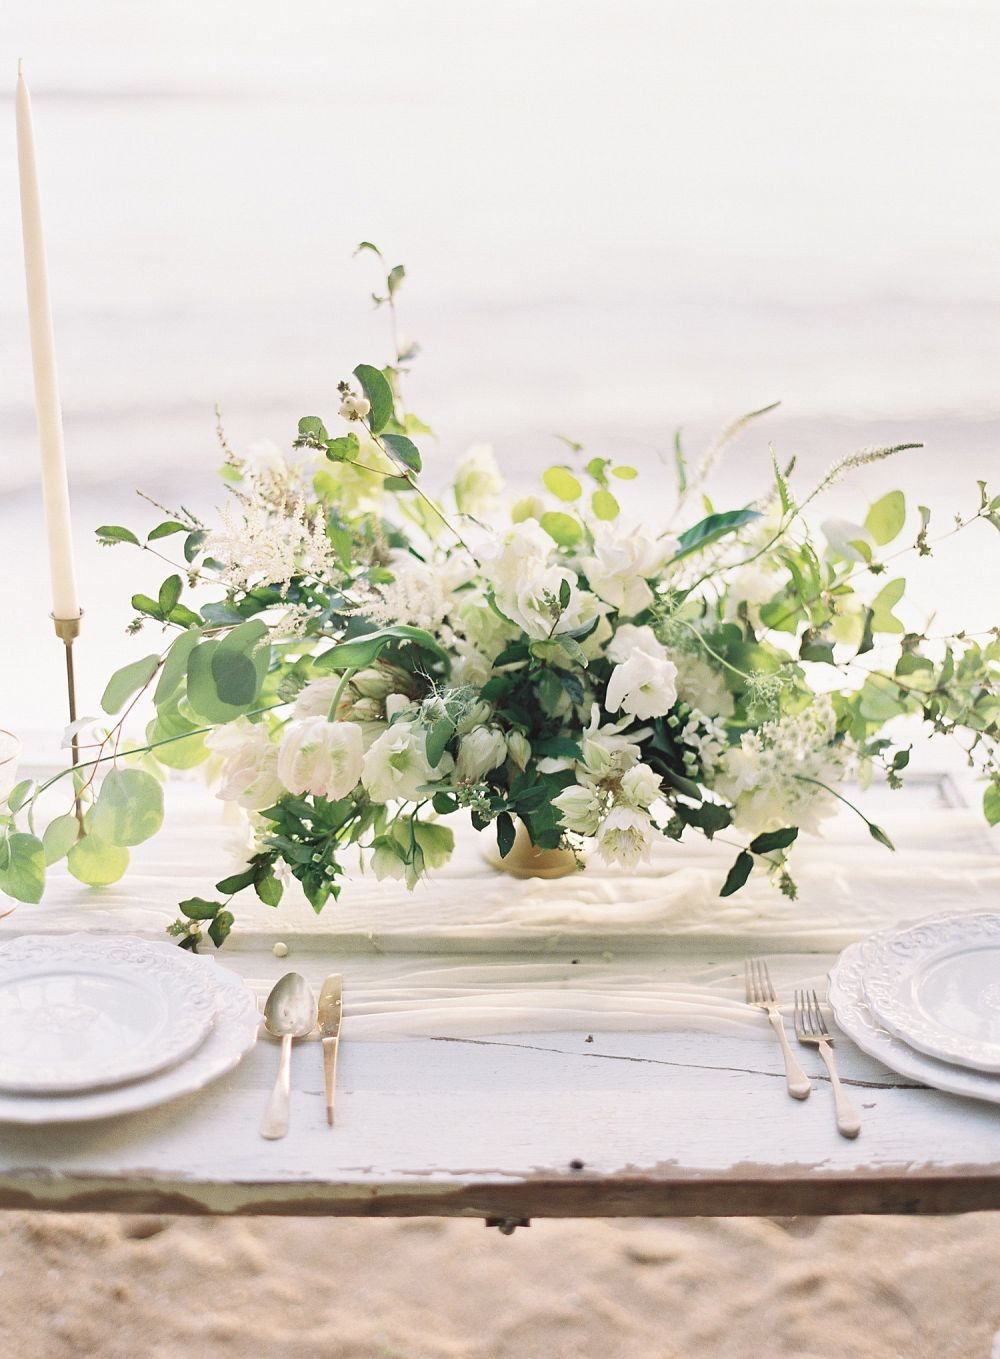 Designs by Hemingway - a leading wedding florist and stylist based ...